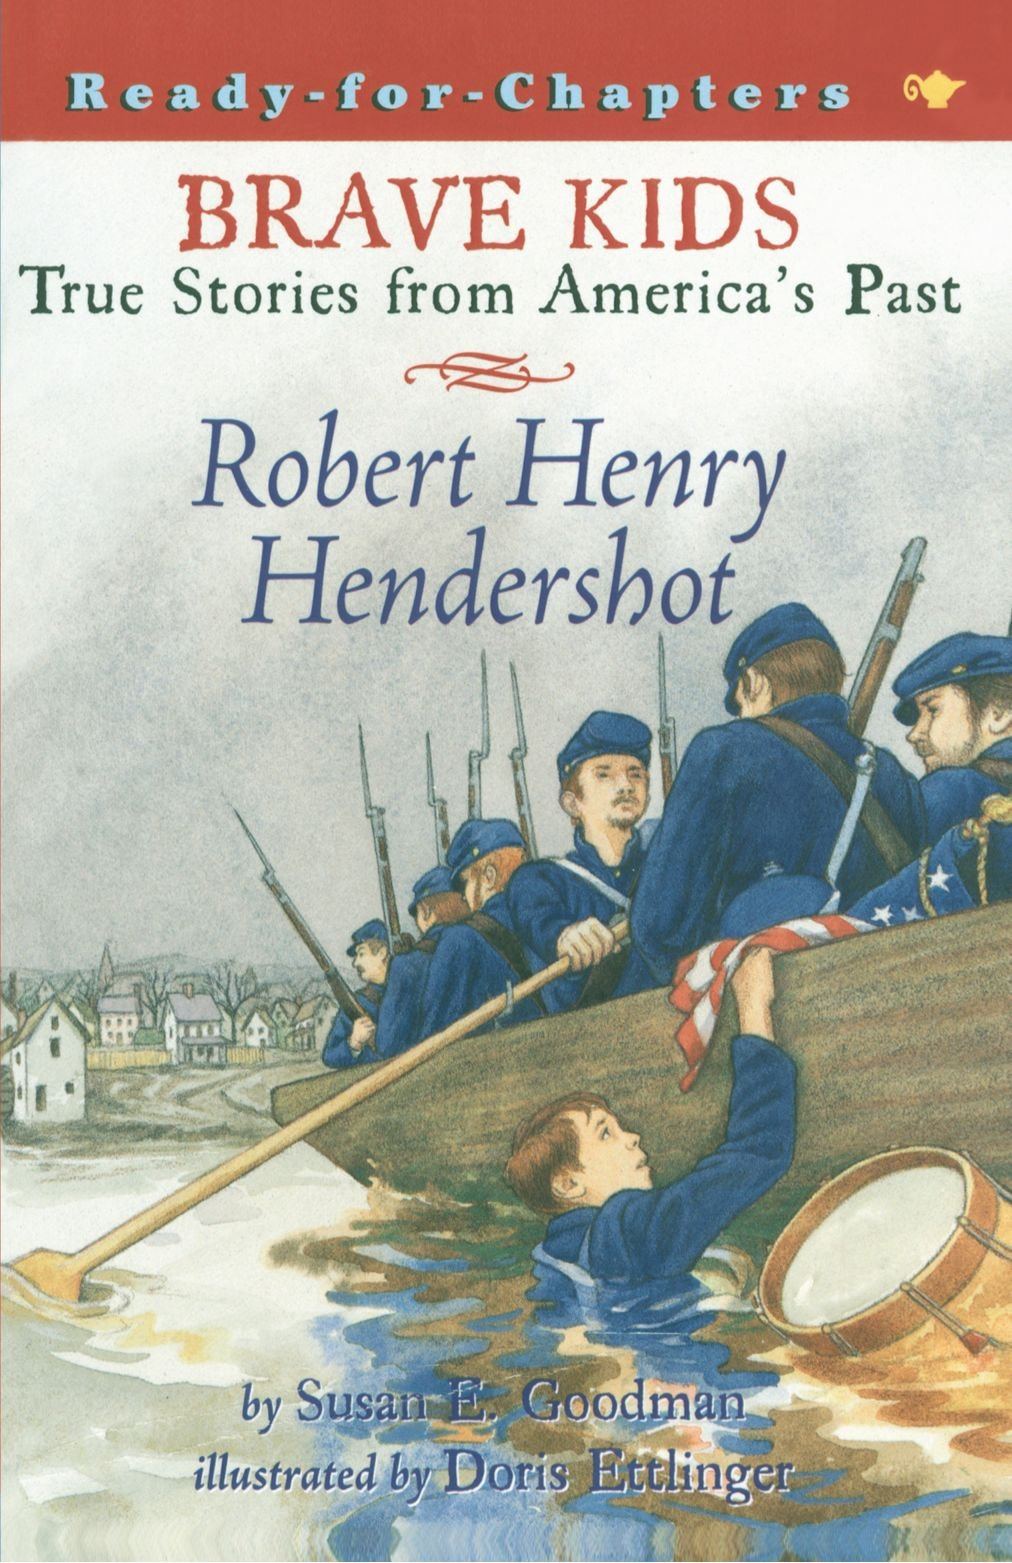 Download Robert Henry Hendershot: True Stories from America's Past ebook